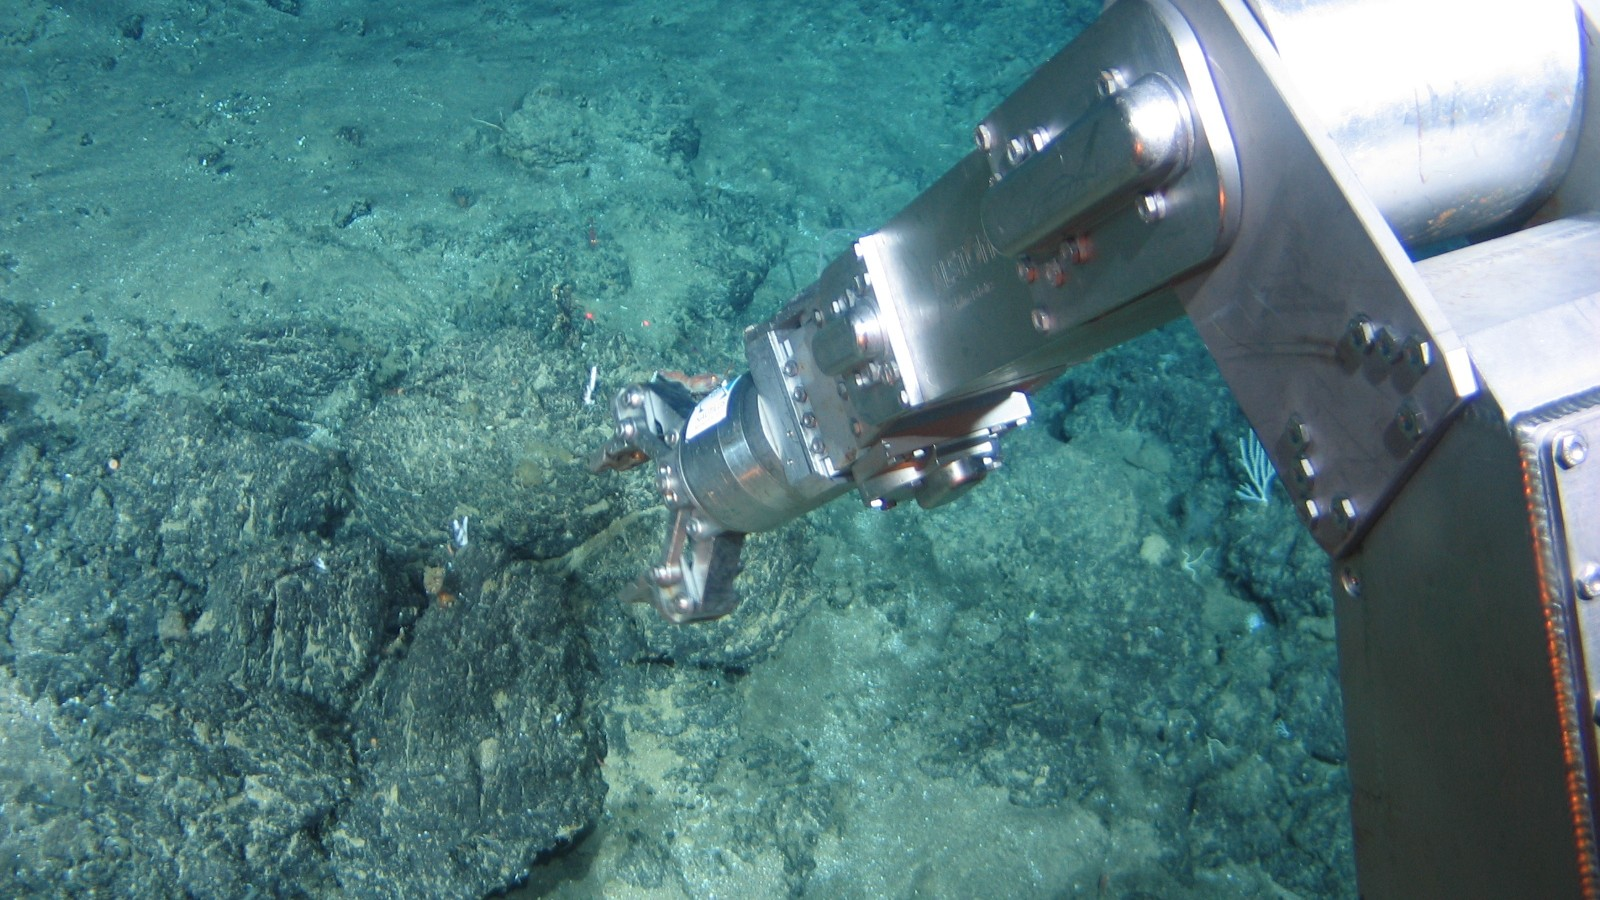 Mining the Bottom of the Ocean Is as Bad for the Environment as it Sounds